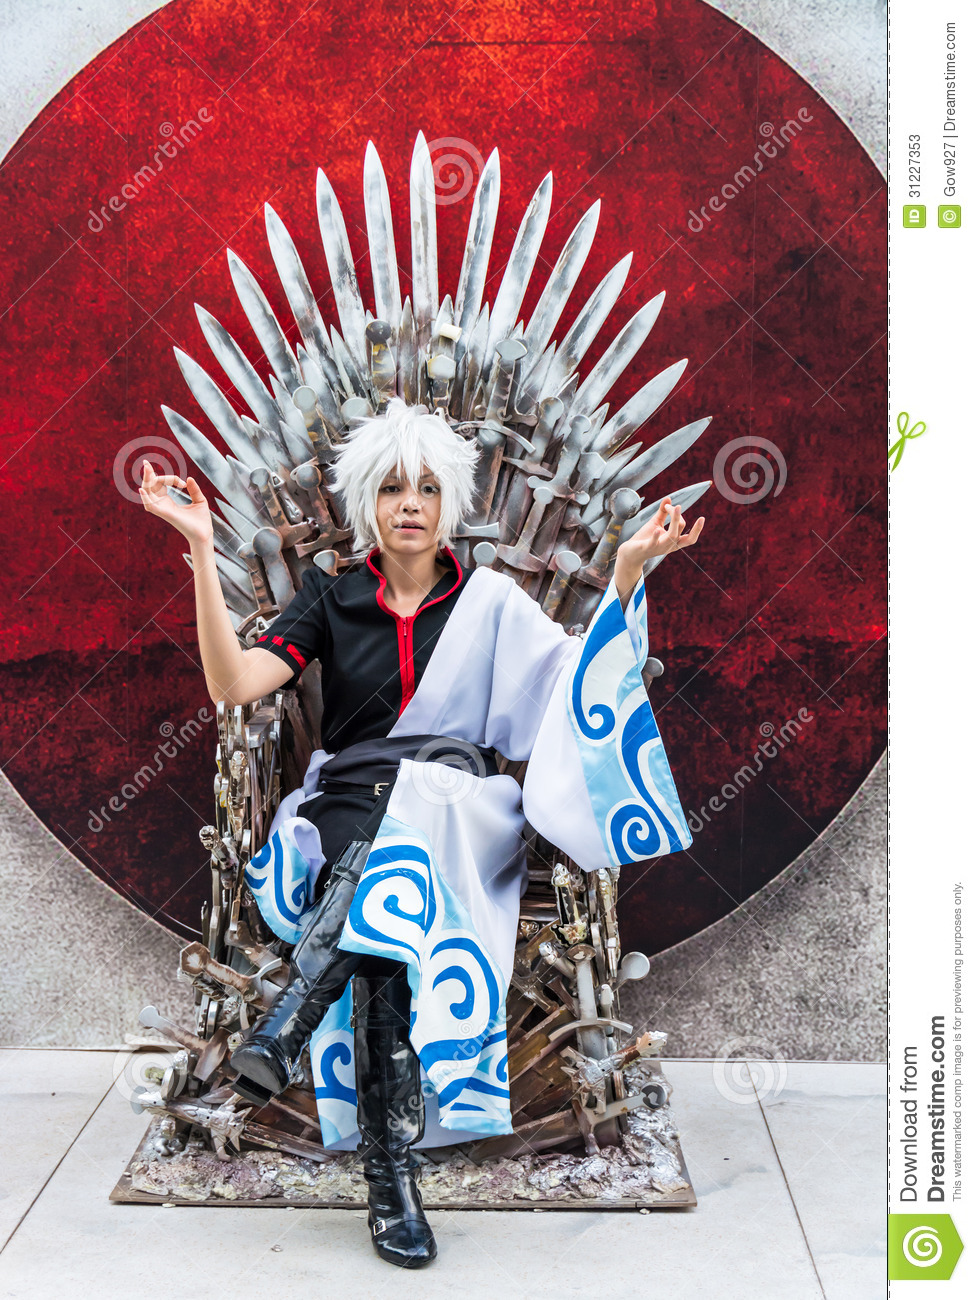 Sofa Woman Thai Cosplayer Dresses As Sakata Gintoki From Gintama In